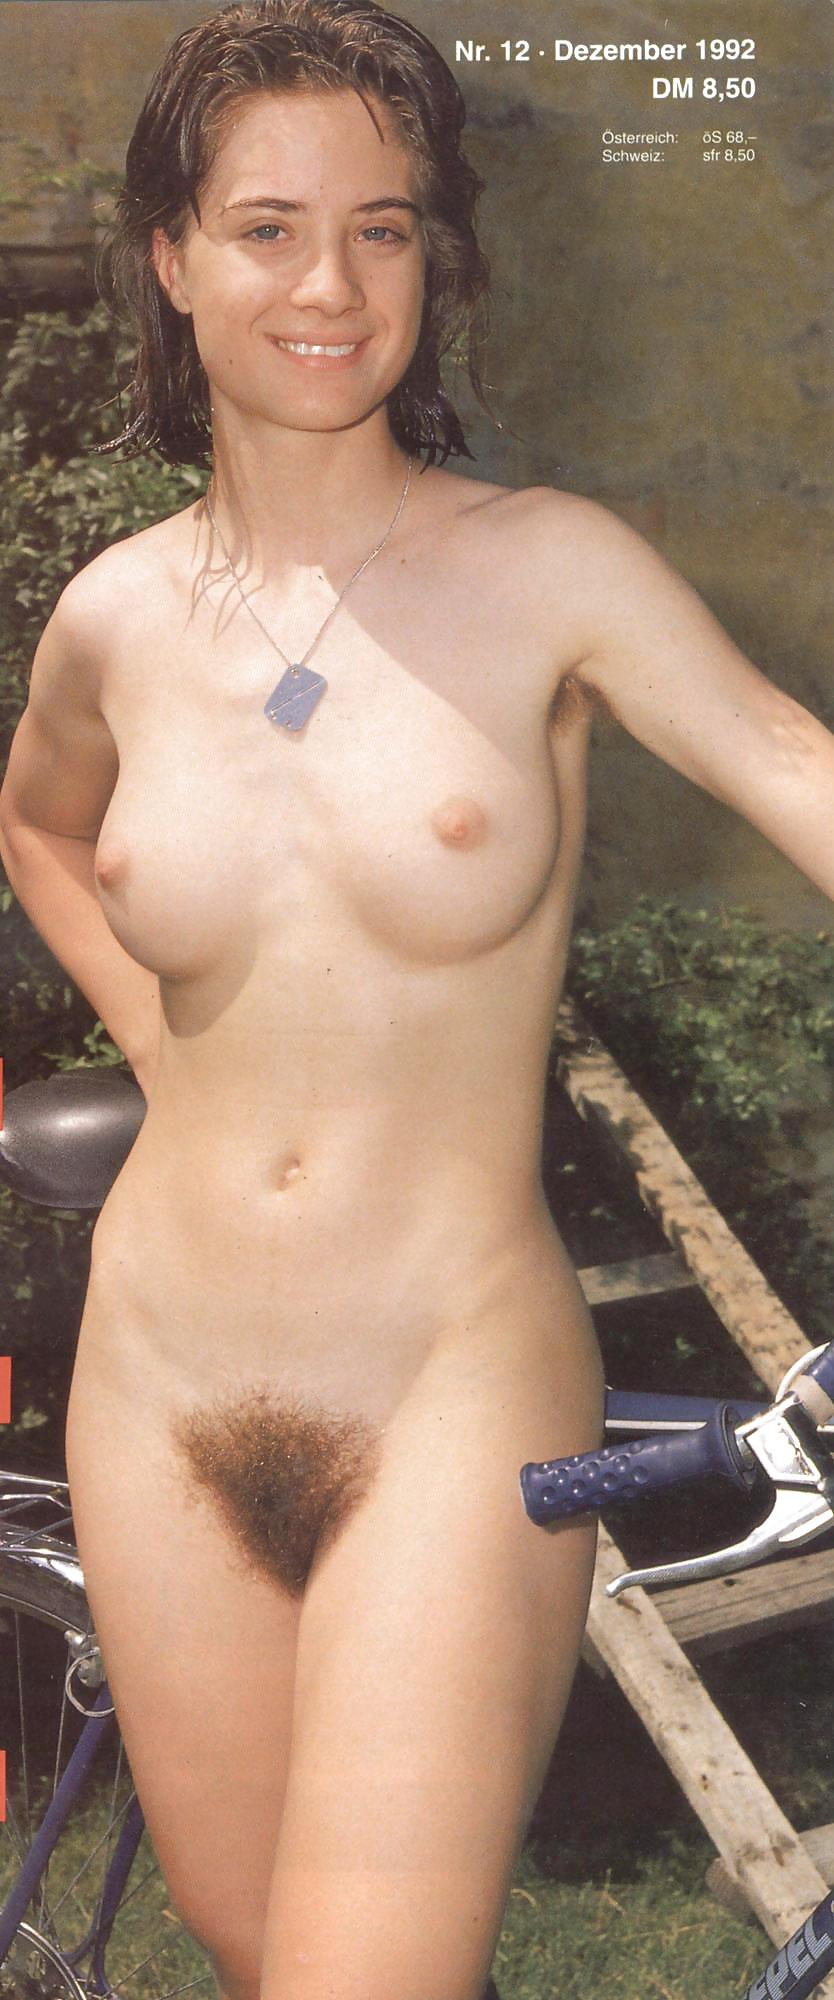 Remarkable, Classic nudist galleries variant think